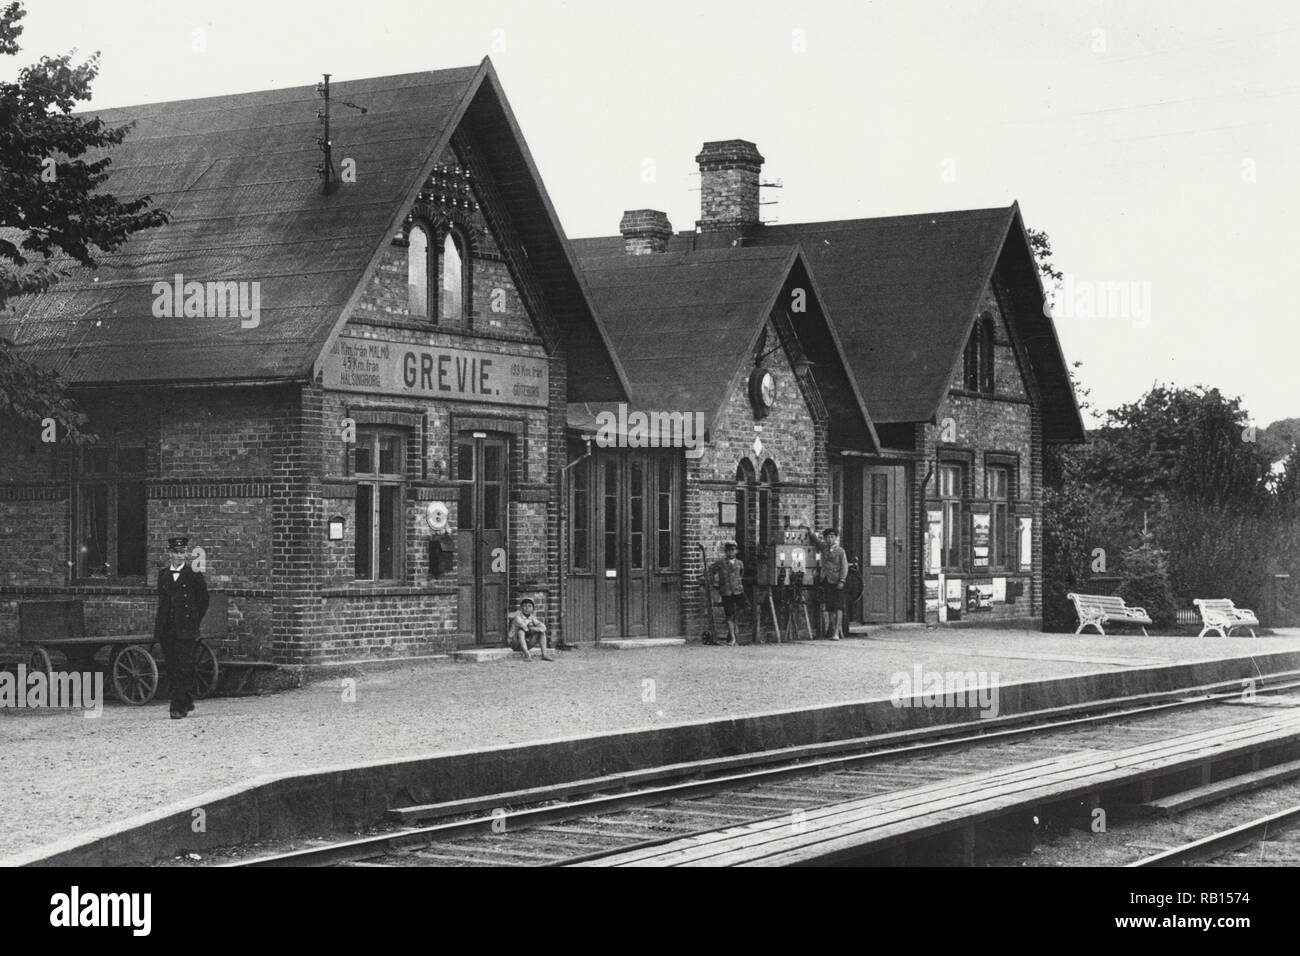 Train station Grevie 1920-talet, stationen Gammalt fotografi.jpg - RB1574  - Stock Image